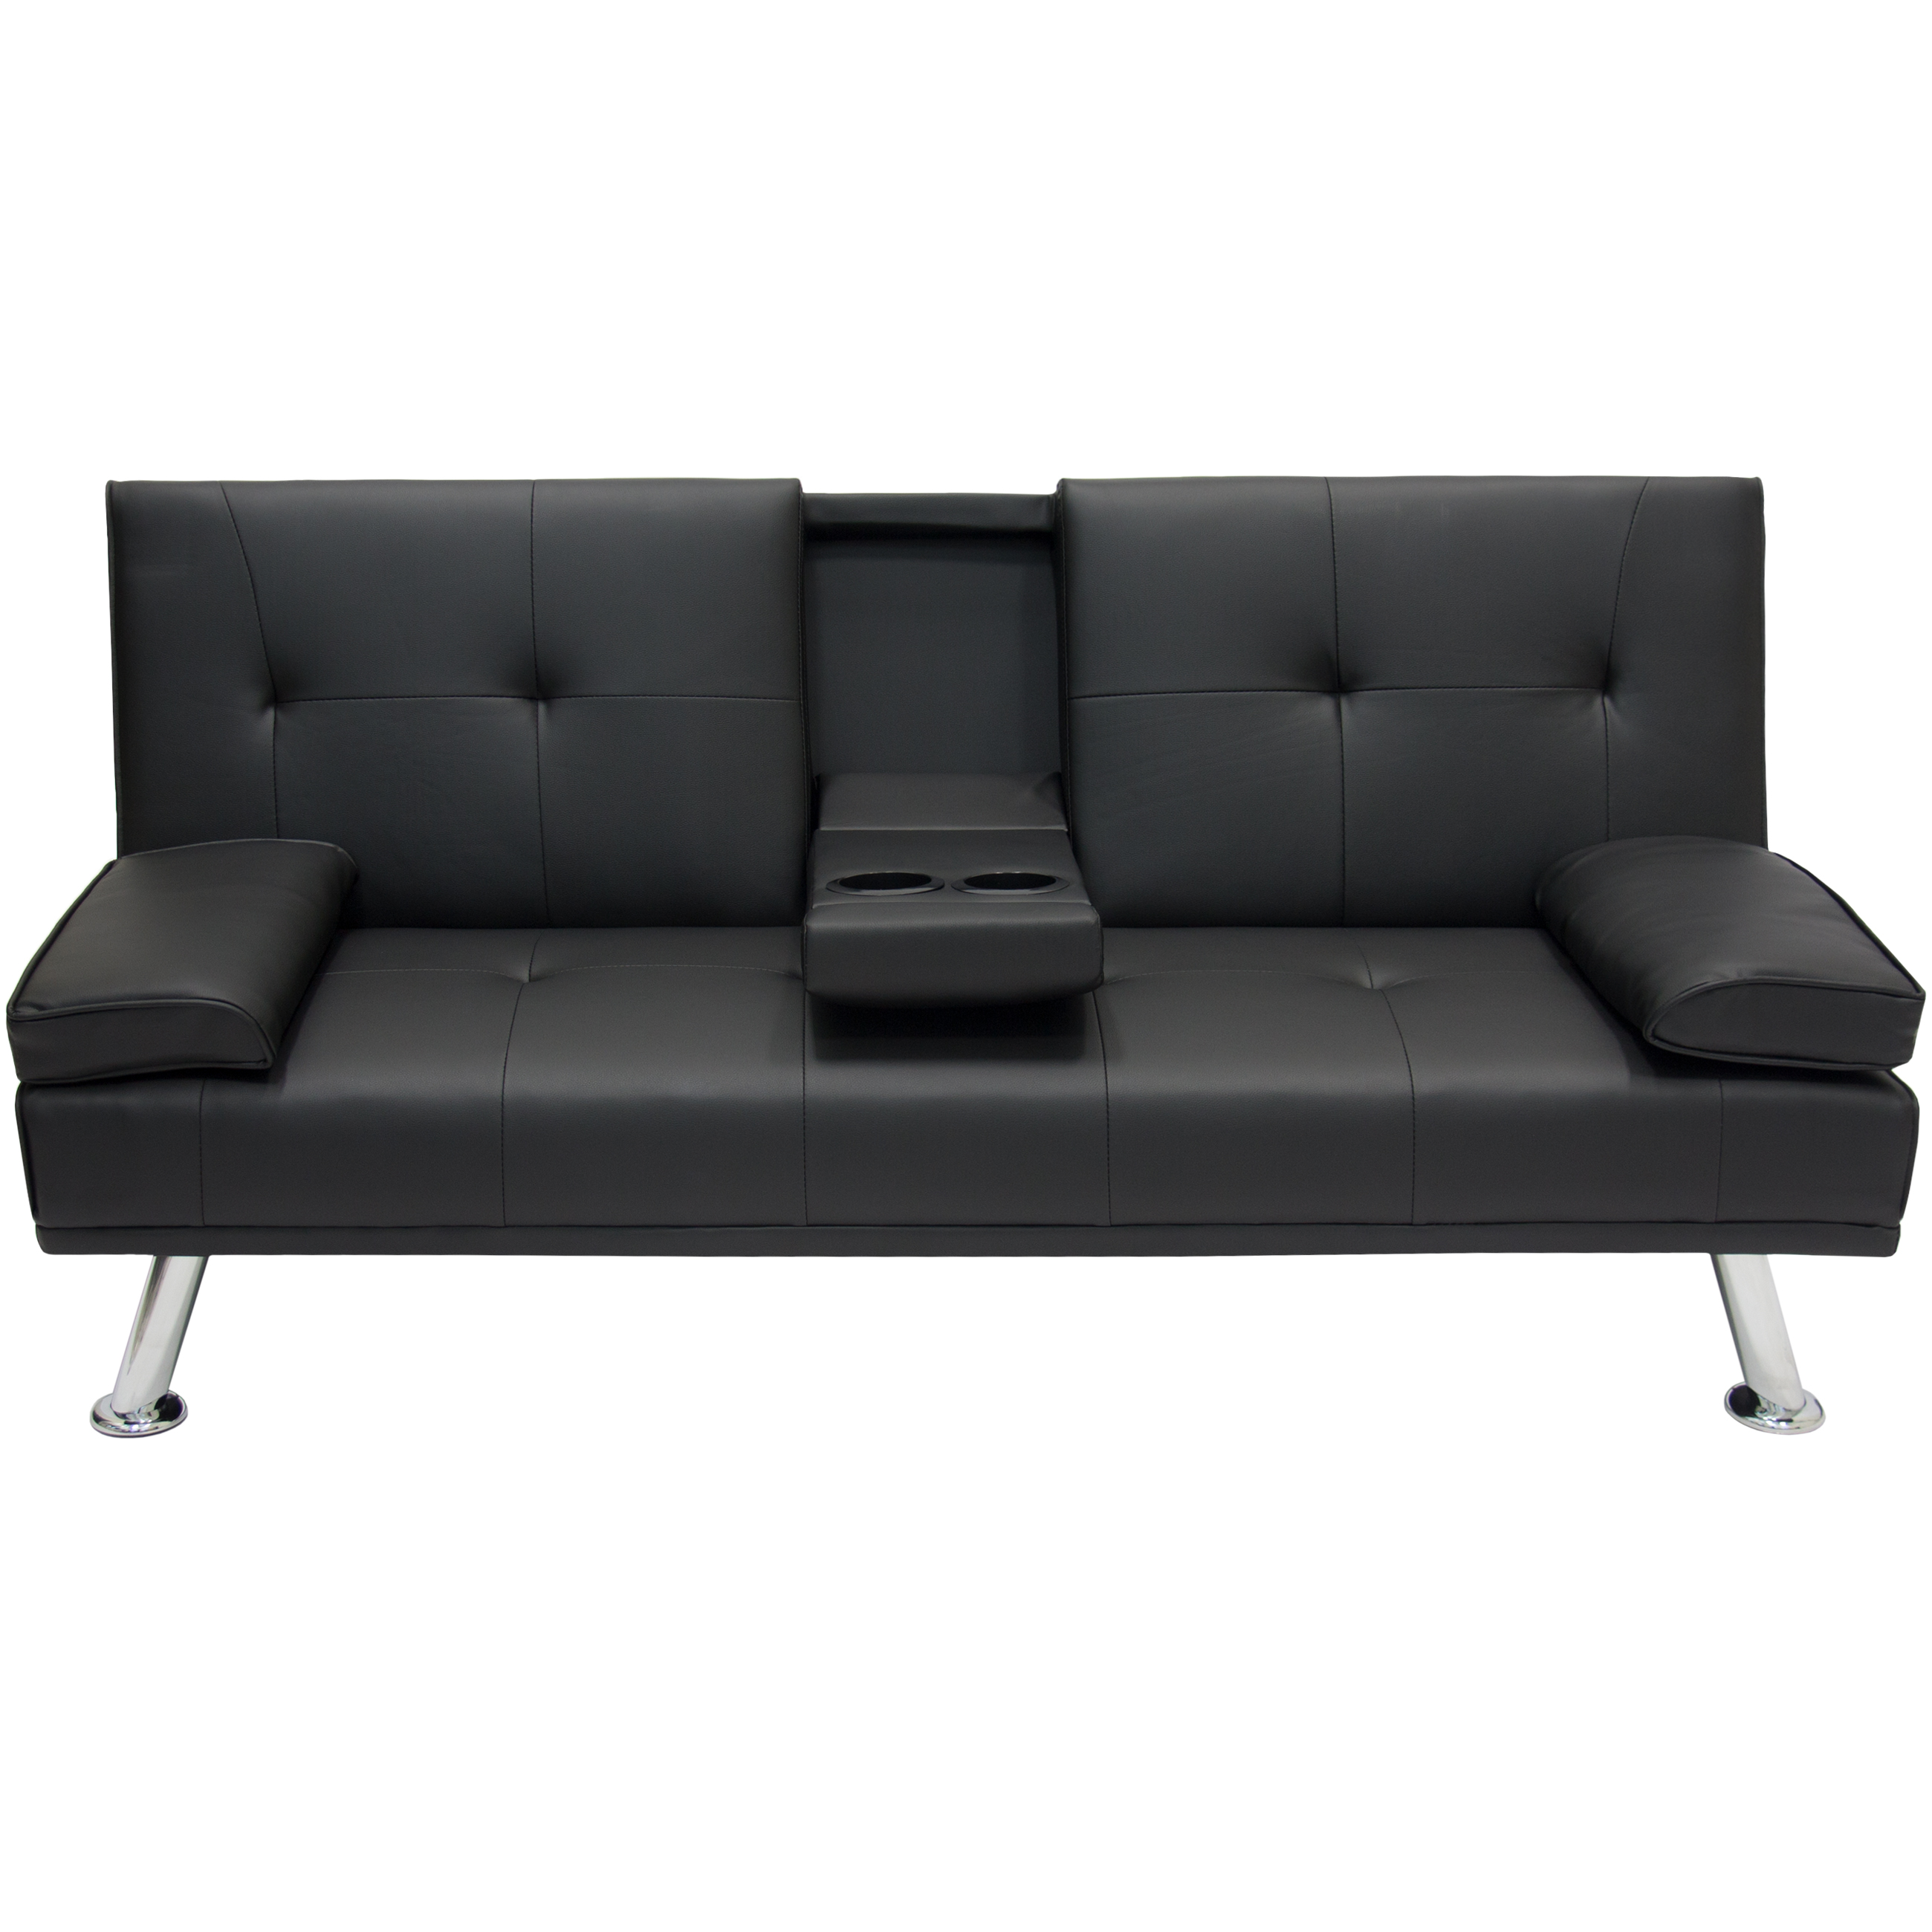 Best Choice Products Modern Entertainment Futon Sofa Bed Fold Up & Down Recliner Couch... by